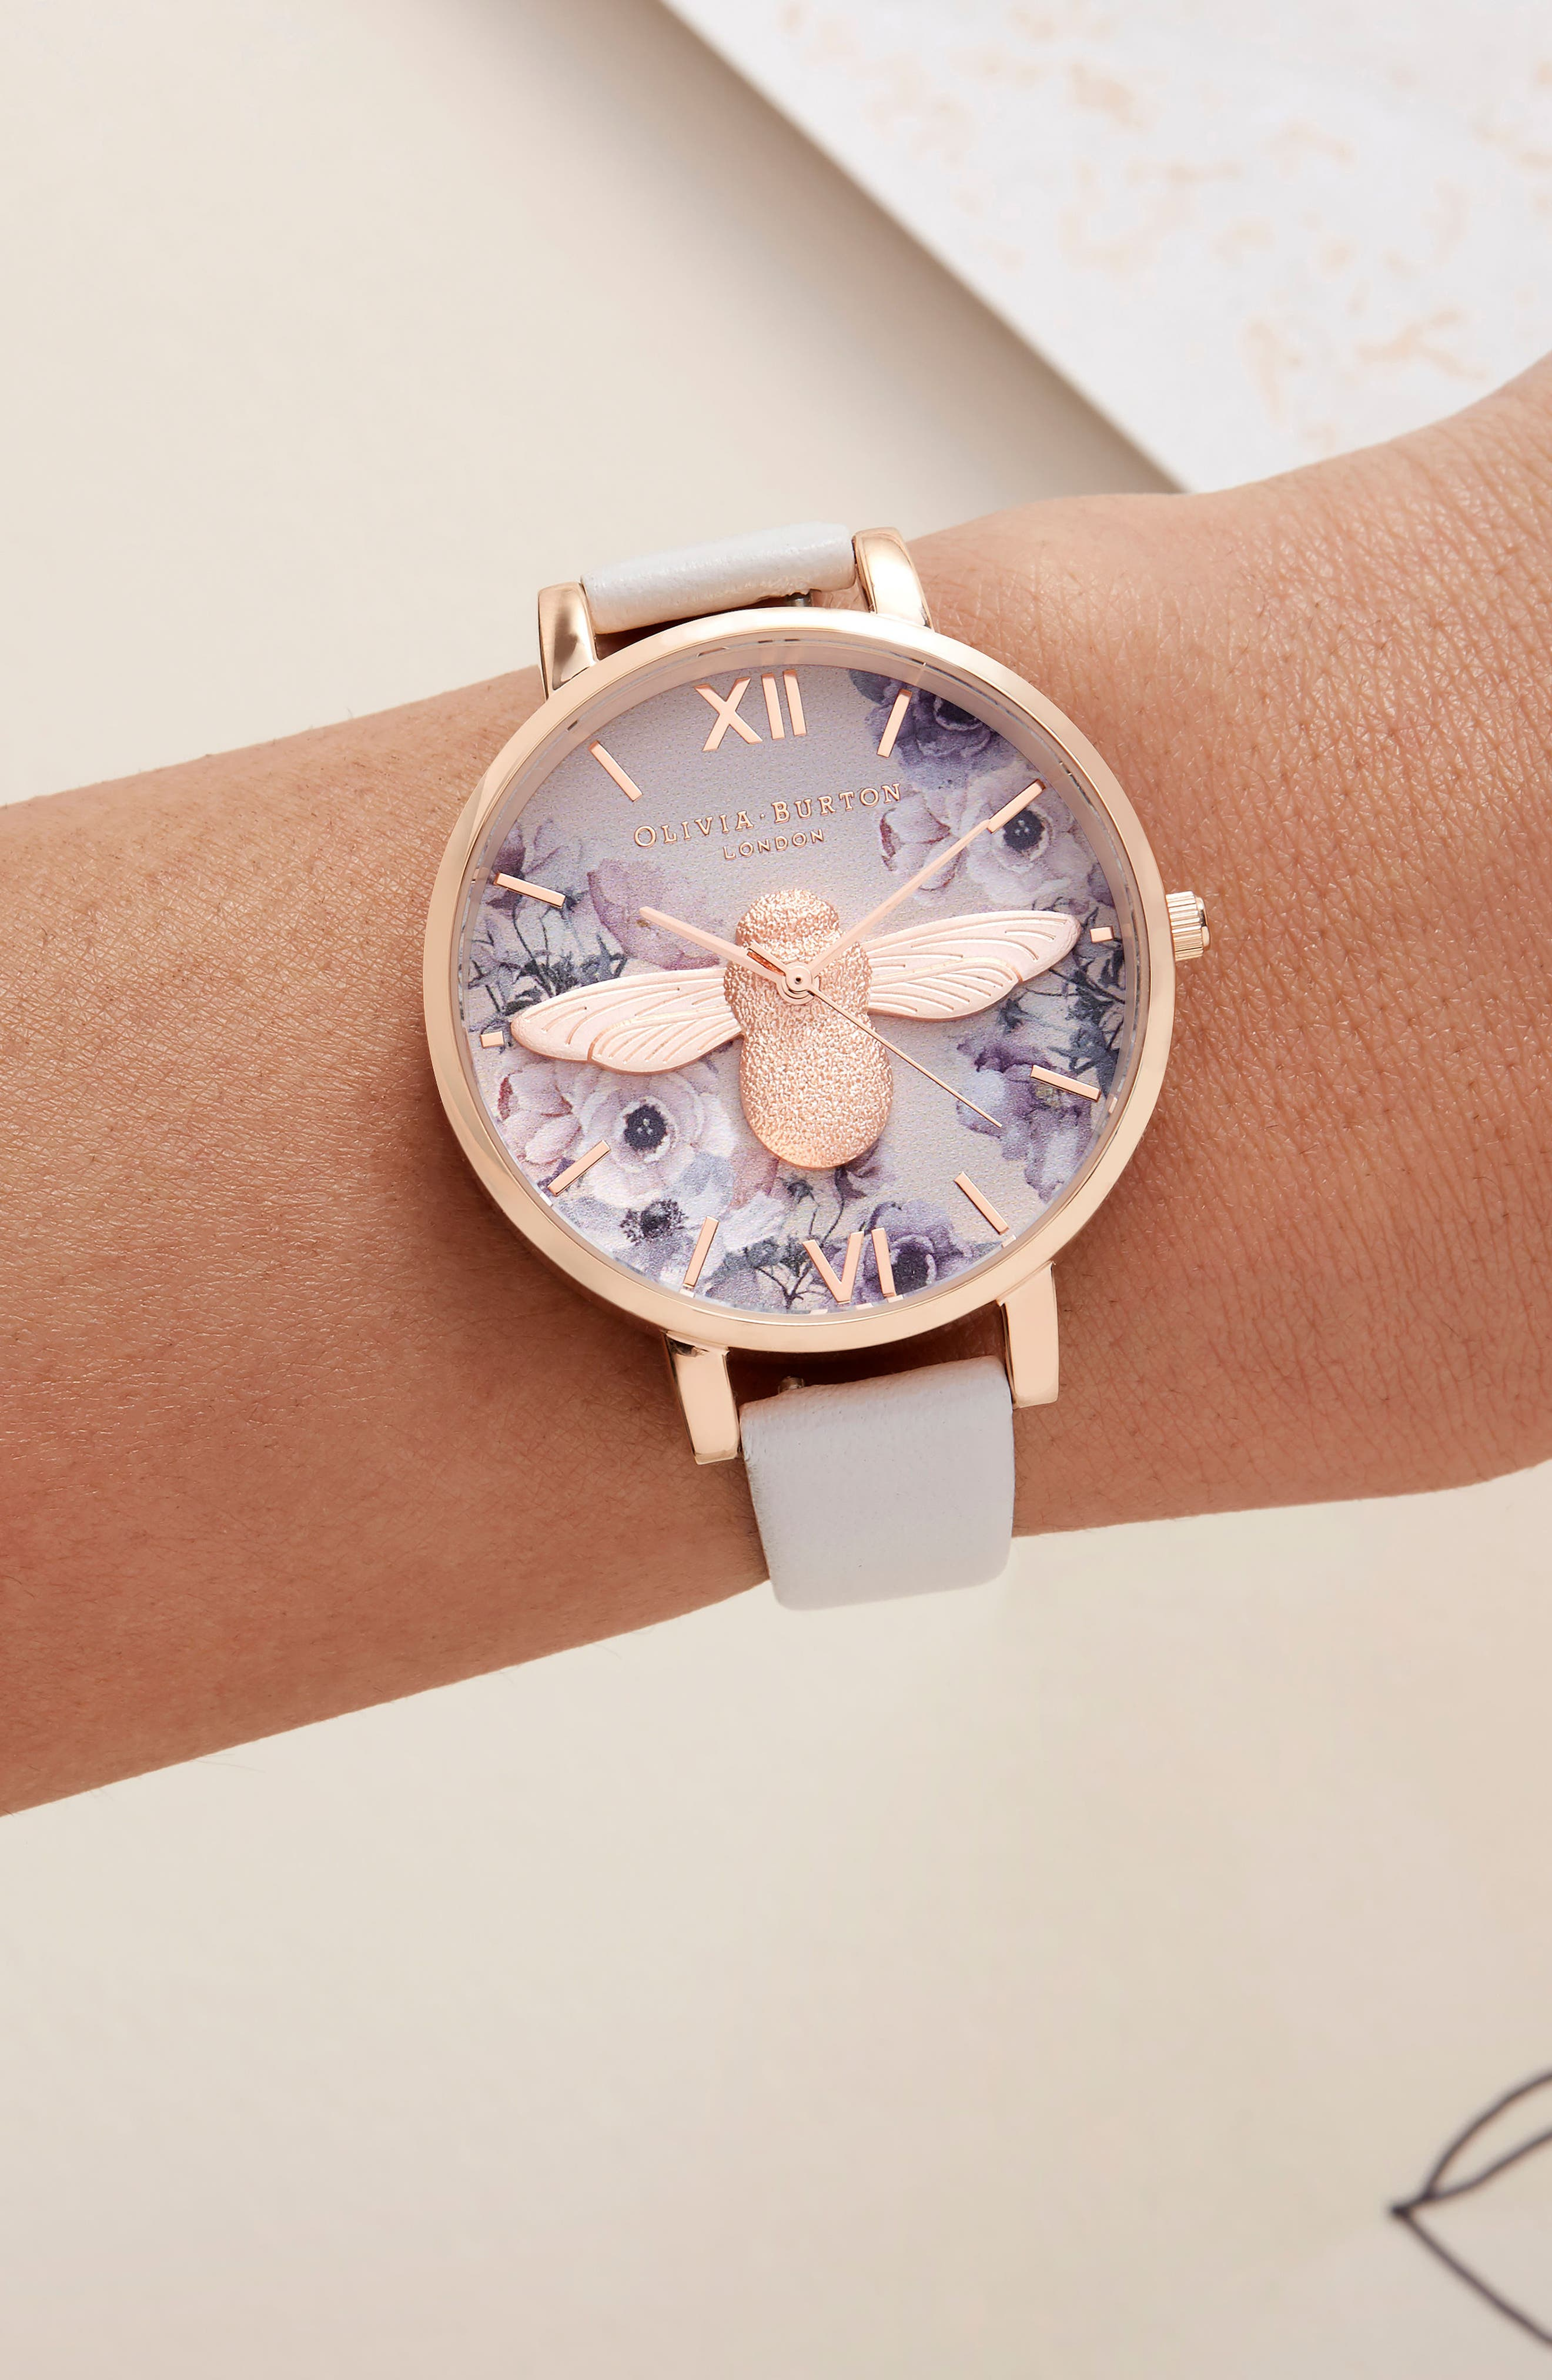 Watercolor Floral Leather Strap Watch, 38mm,                             Alternate thumbnail 6, color,                             BLUSH/ BEE/ ROSE GOLD